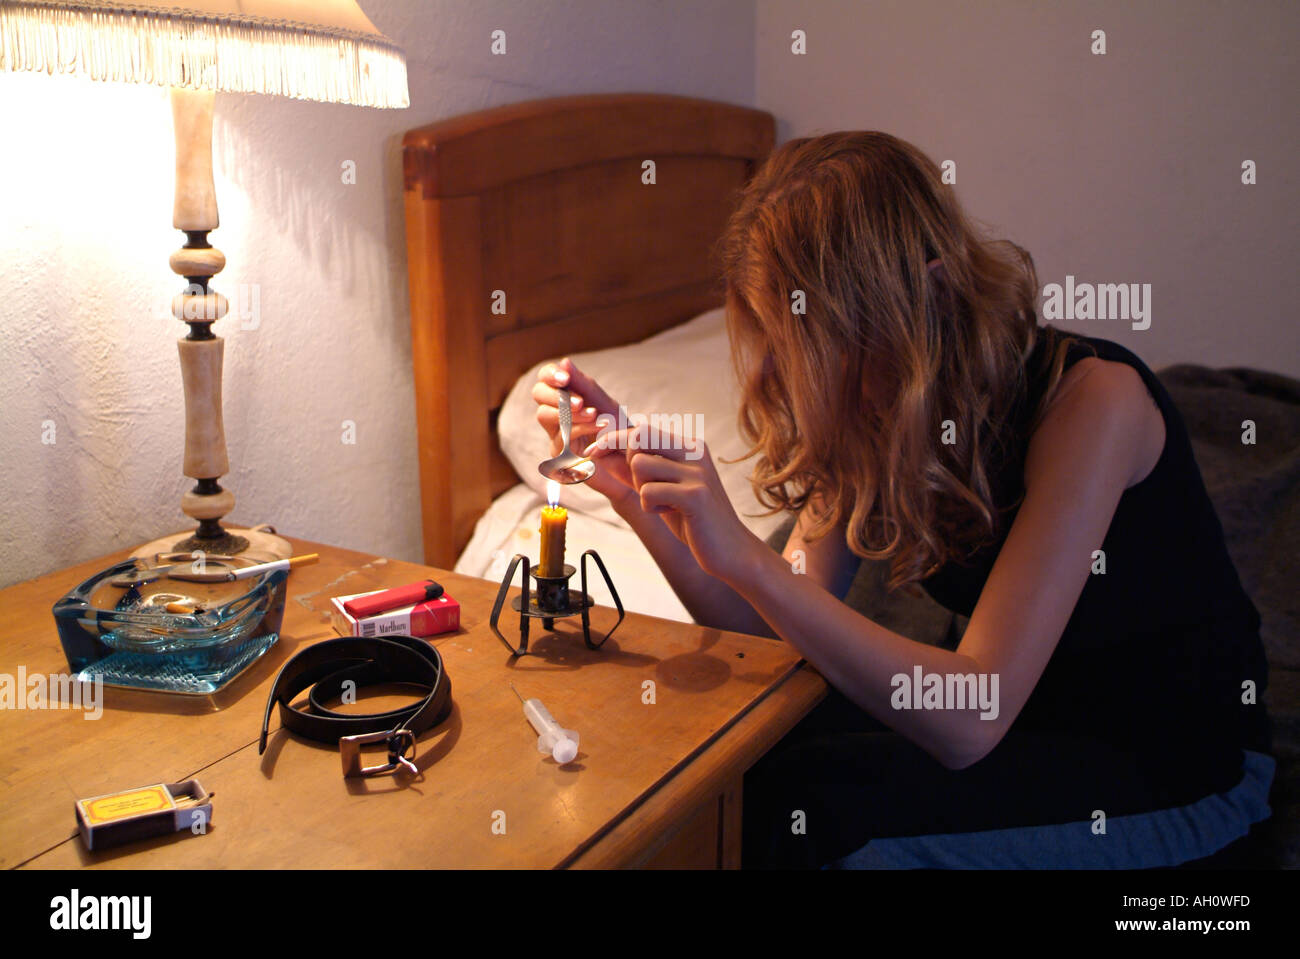 Heroin Addict - Stock Image